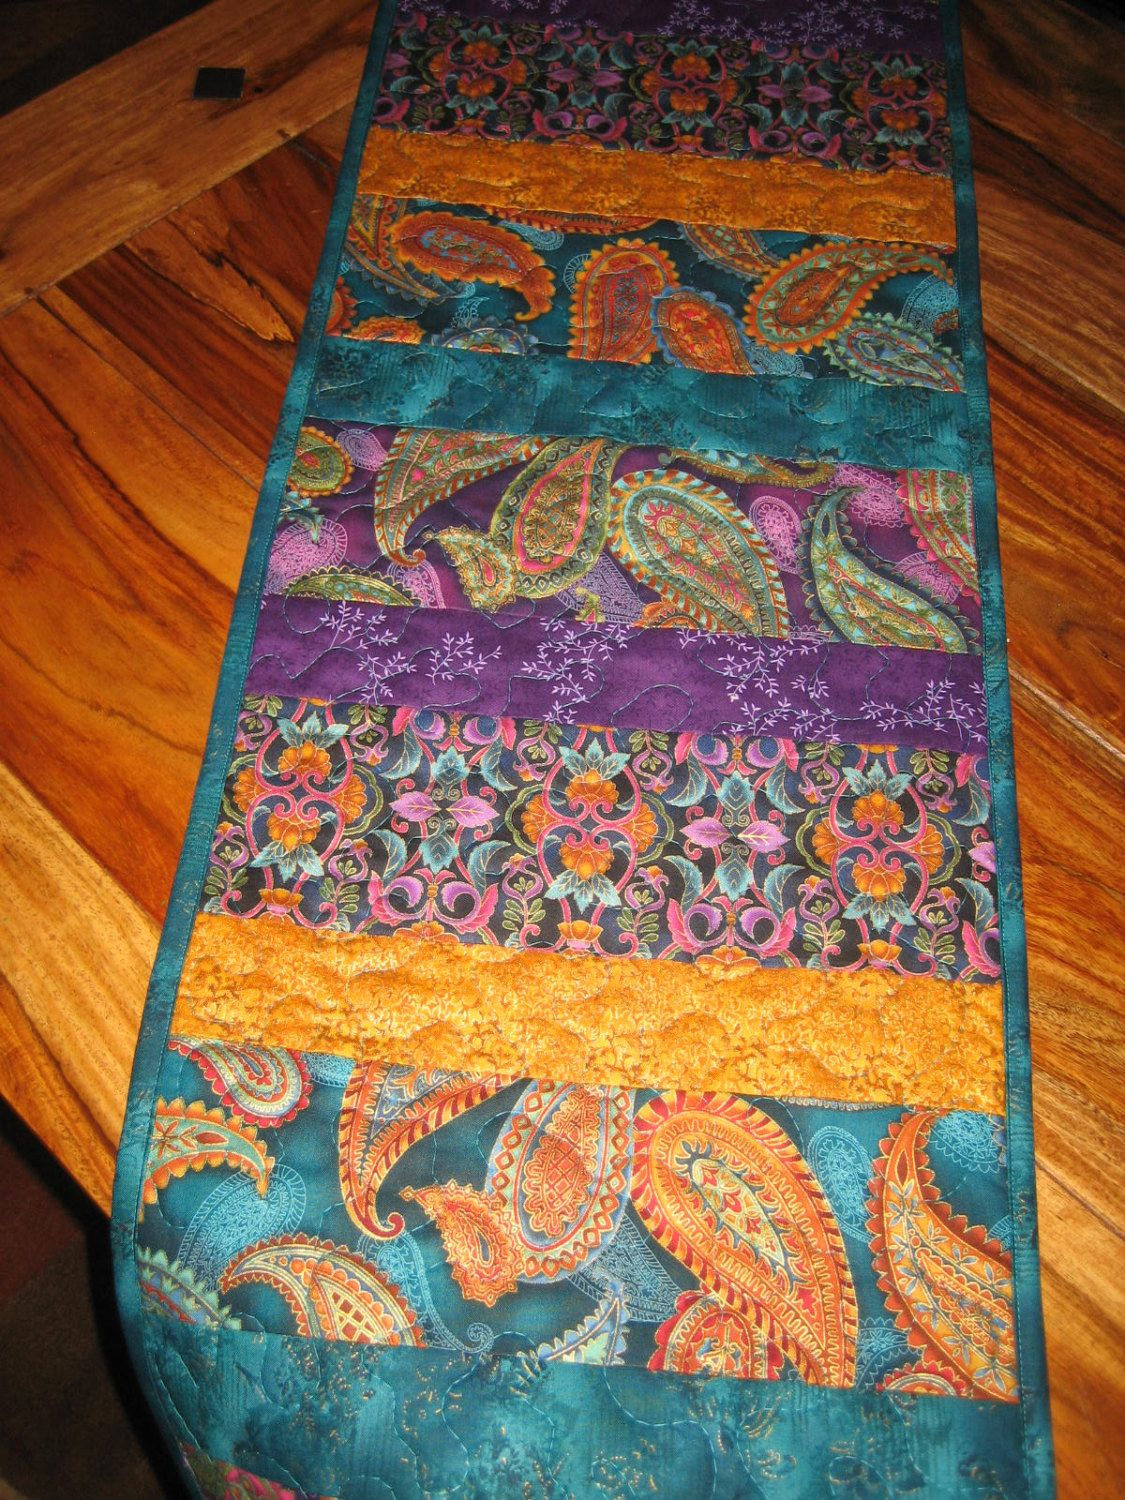 Quilted Table Runner Paisley Jewel Tone Prints In Purple